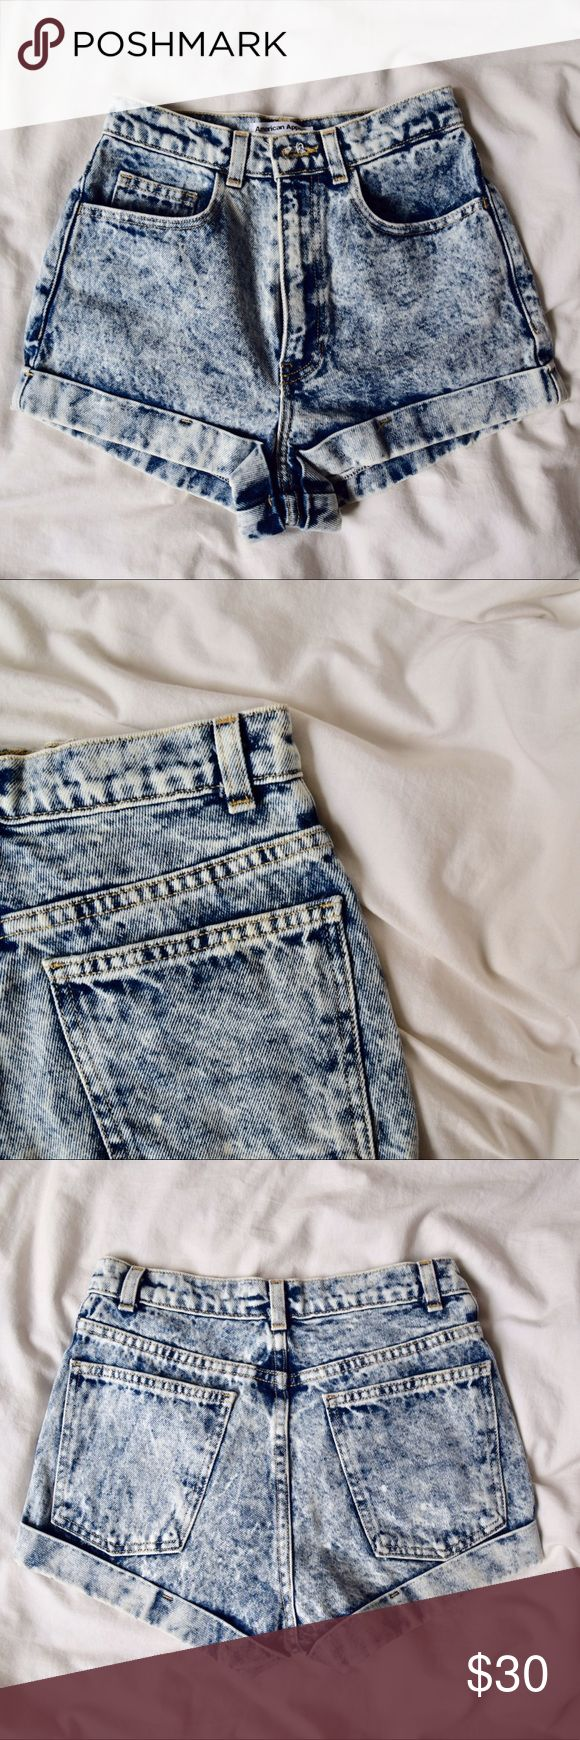 American Apparel Acid Wash Shorts American Apparel shorts  Blue Acid Wash High Waisted  Size 26 American Apparel Shorts Jean Shorts